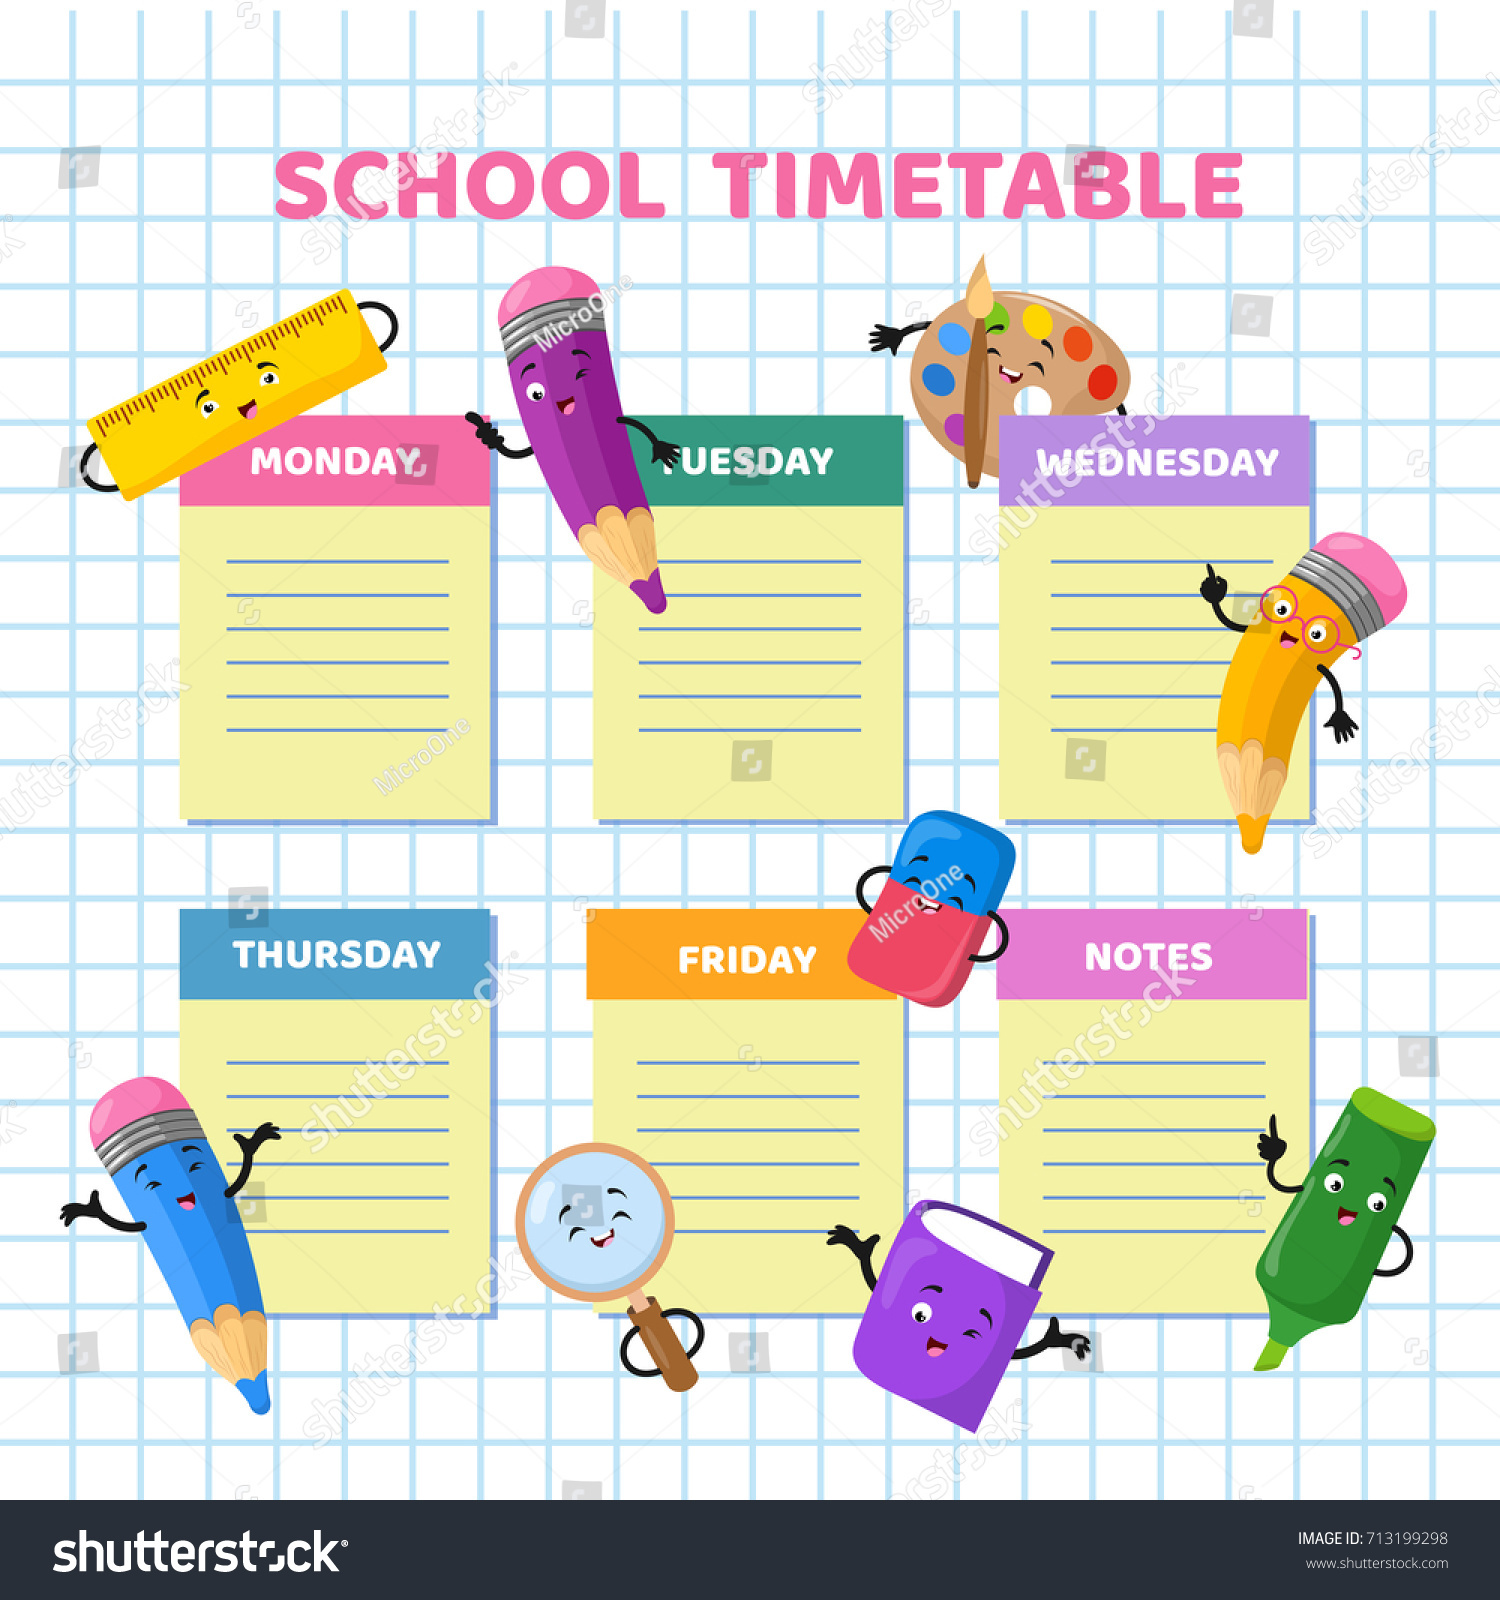 School Timetable Funny Cartoon Stationery Characters Stock Vector